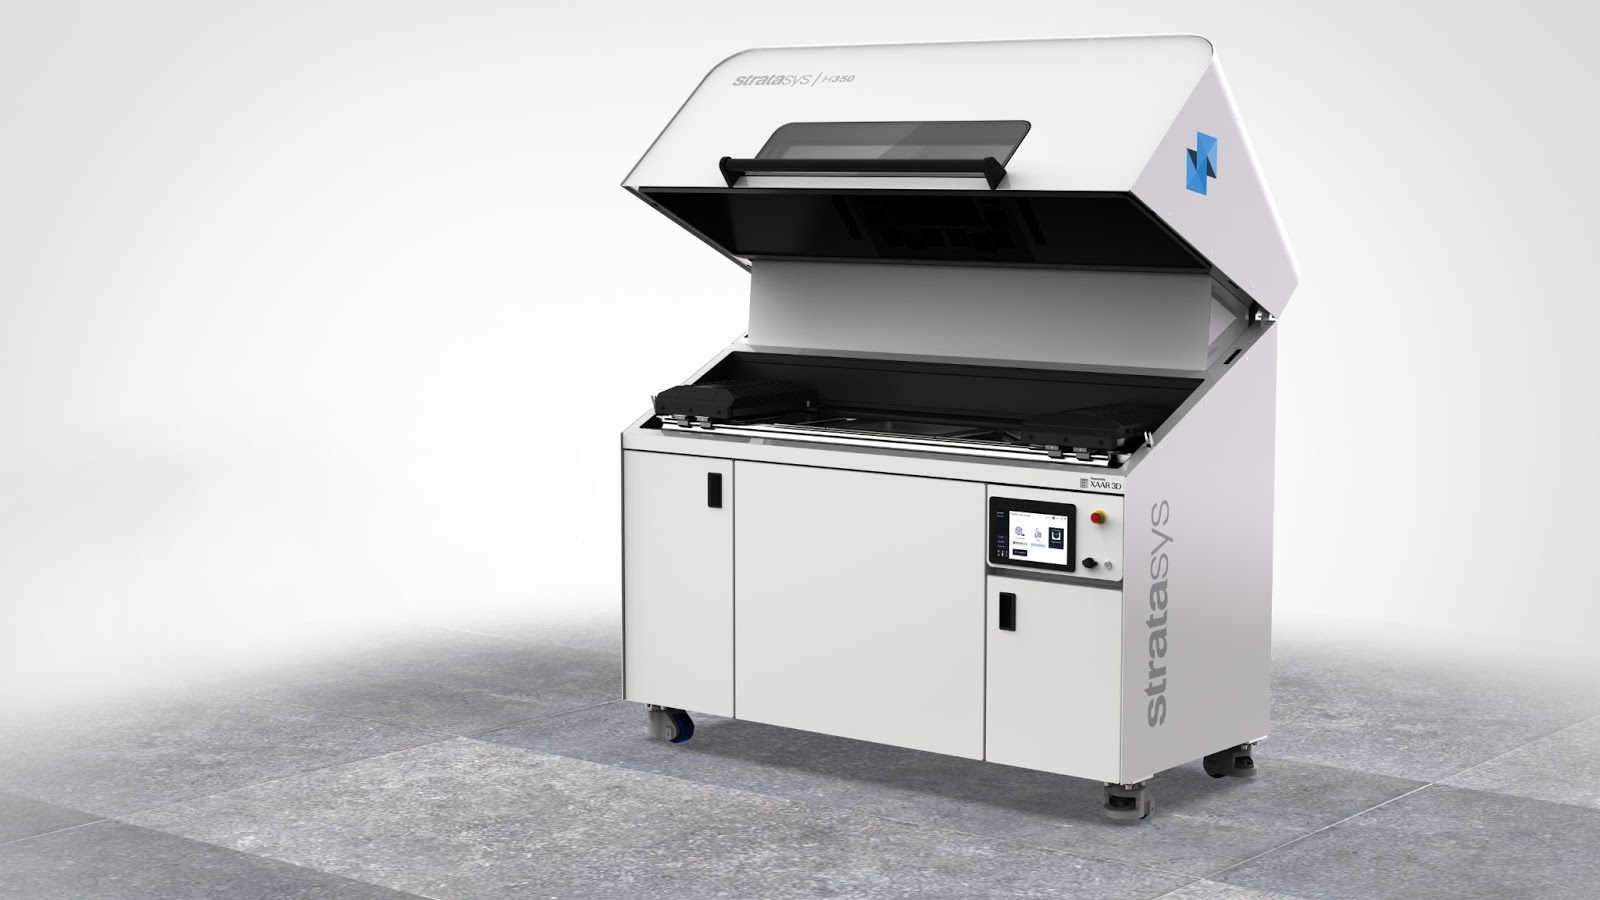 H350 Right Angle Open Hood Faded Floor